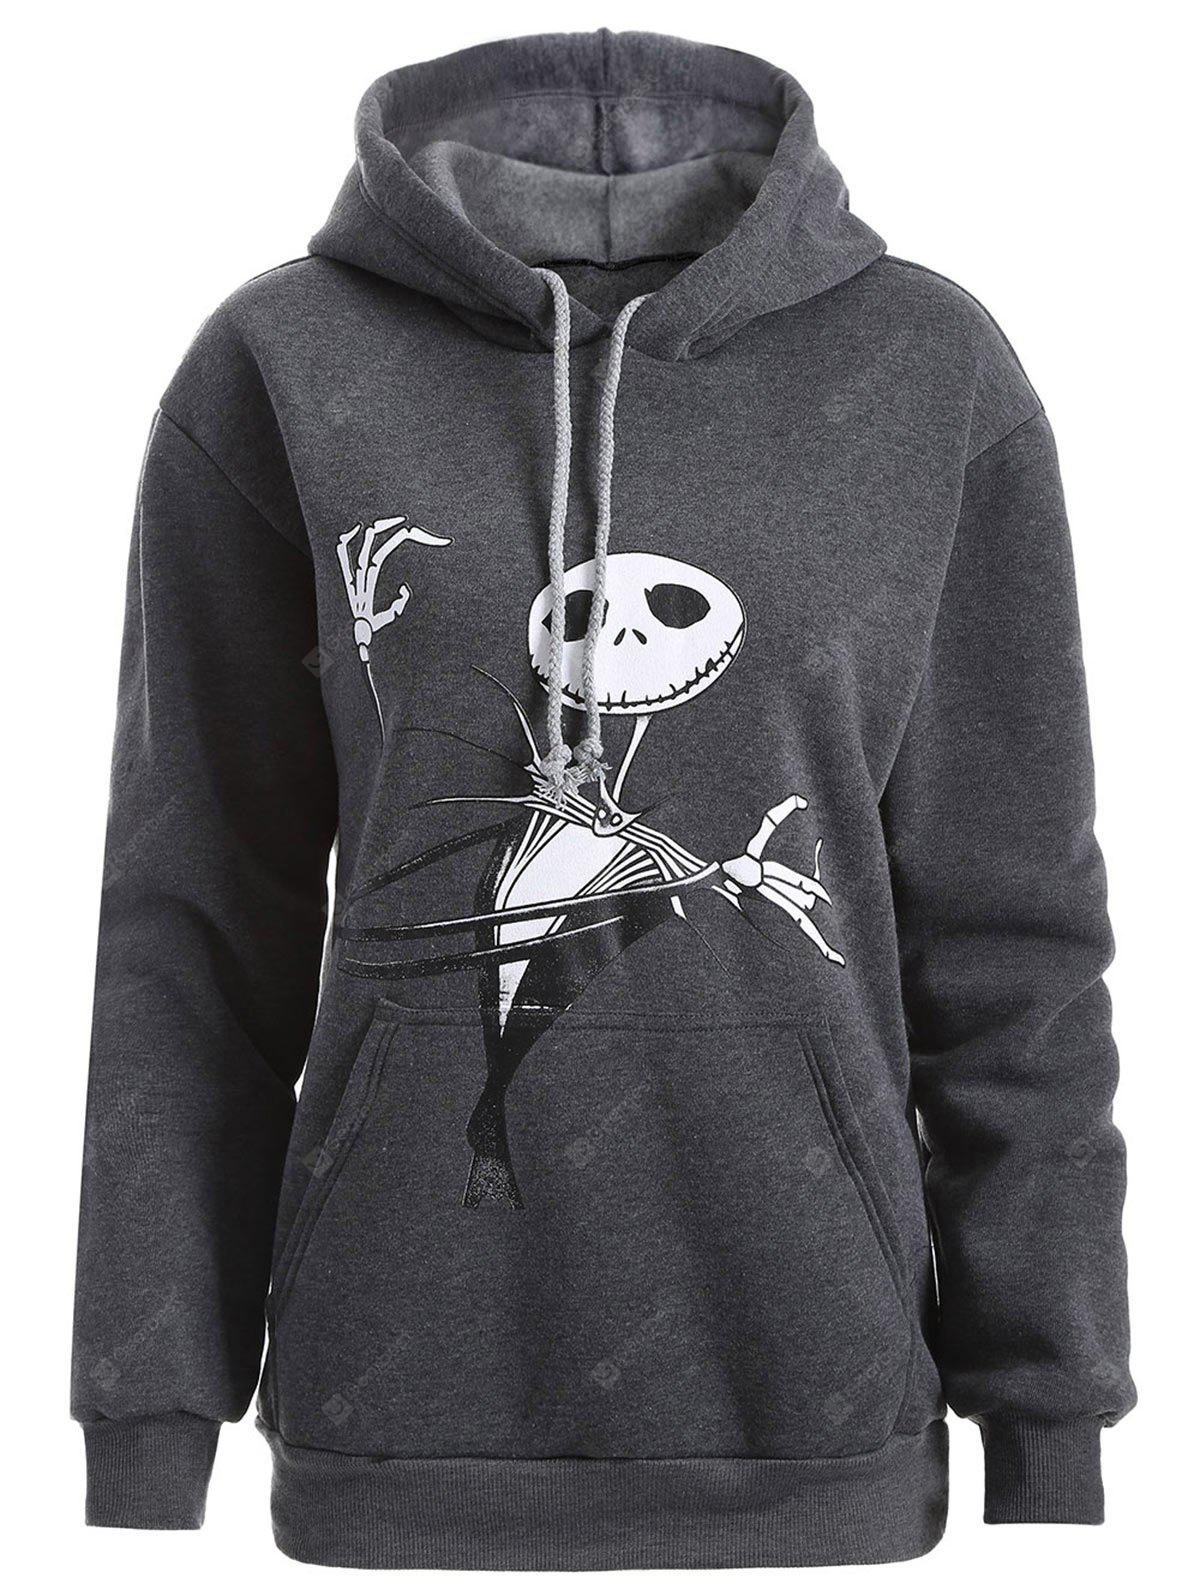 DEEP GRAY 2XL Plus Size Halloween Ghost Print Graphic Hoodie